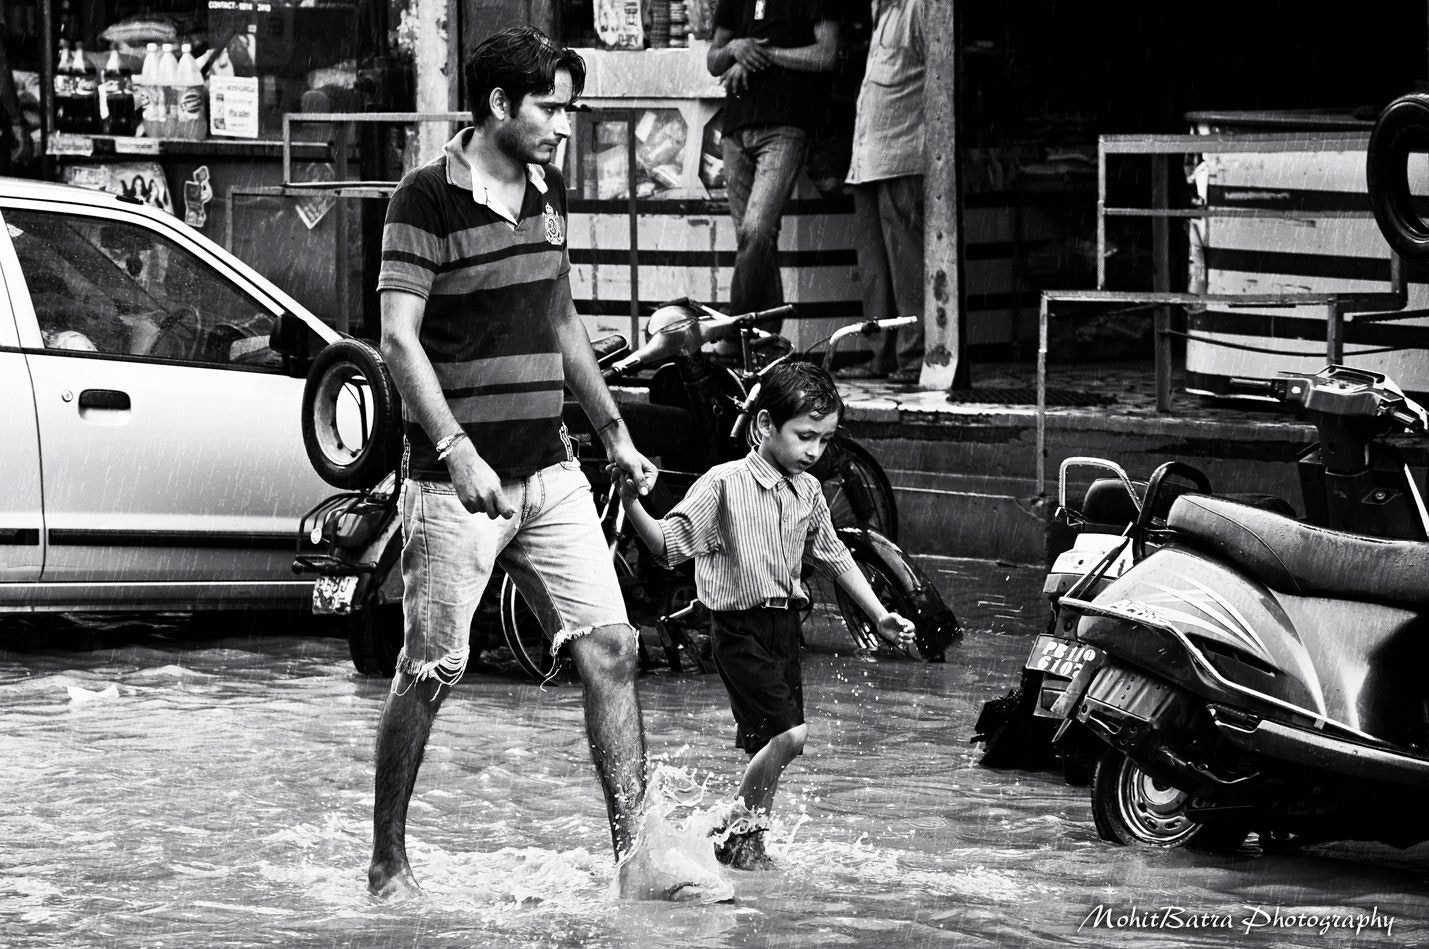 Photograph Street Photography 1 by MohitBatra on 500px